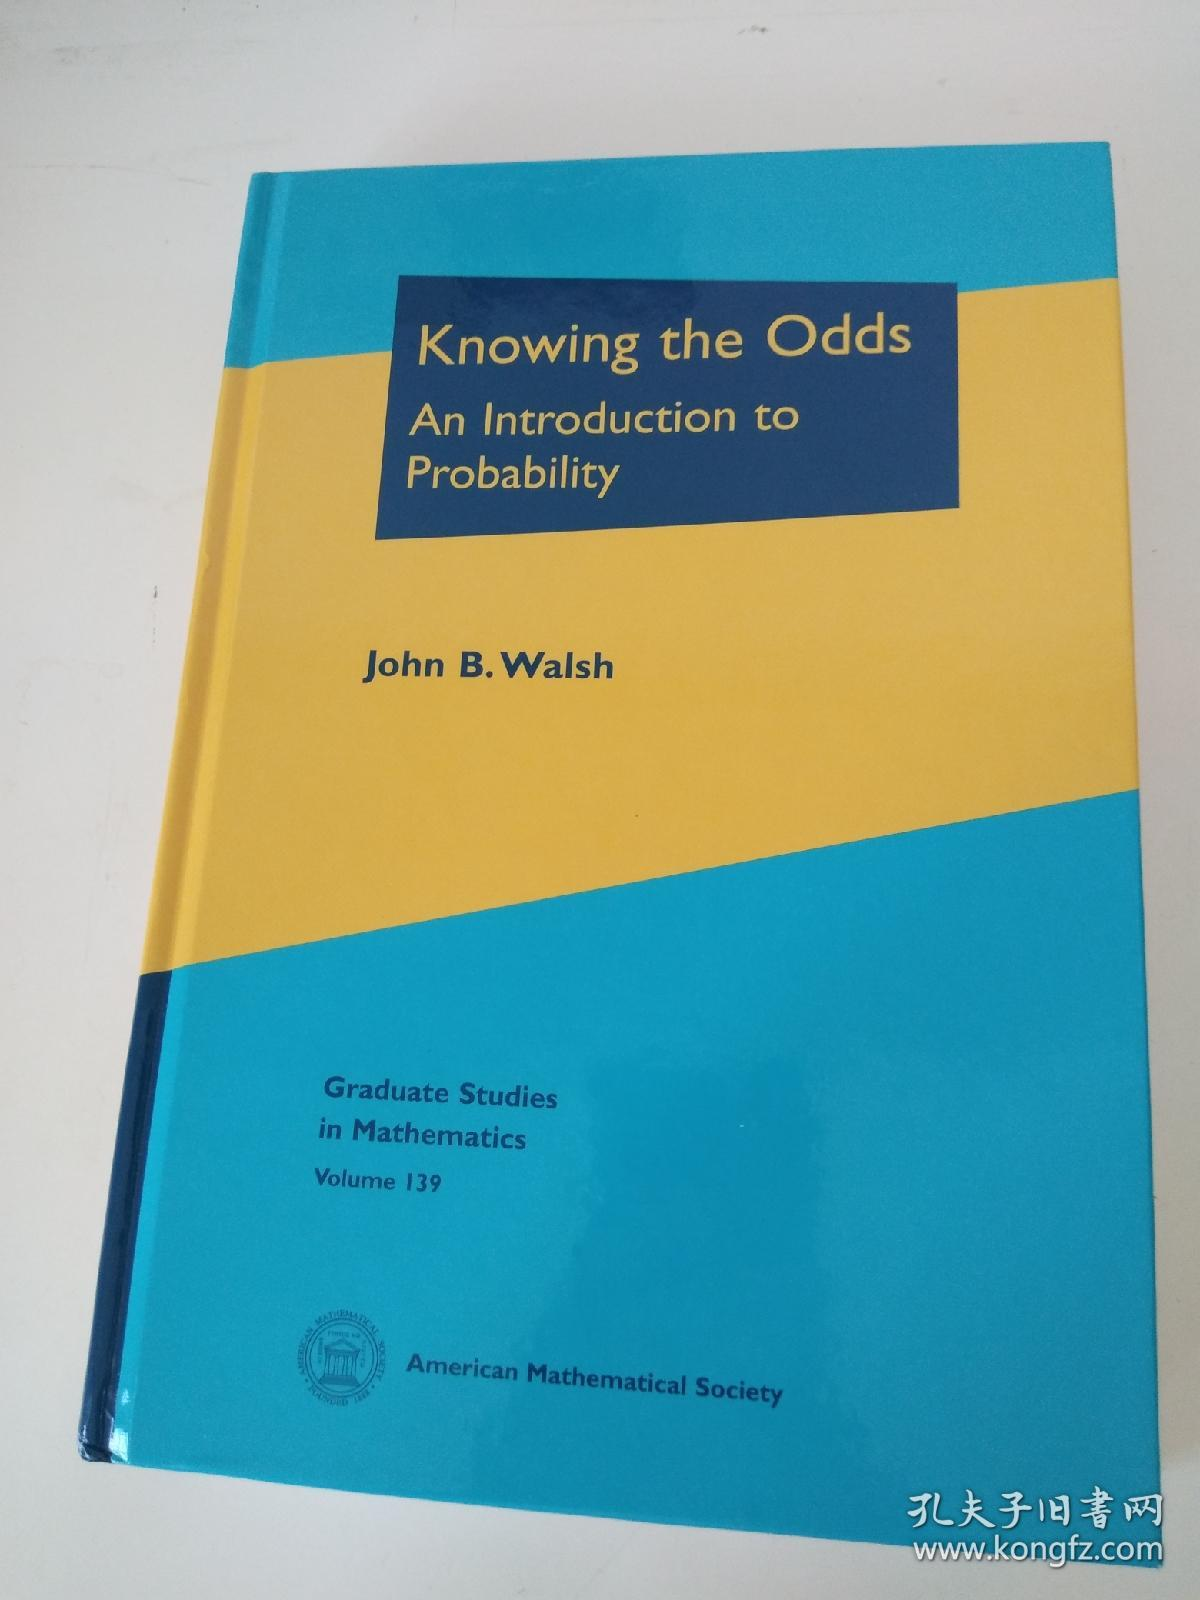 Knowing the Odds: An Introduction to Probability